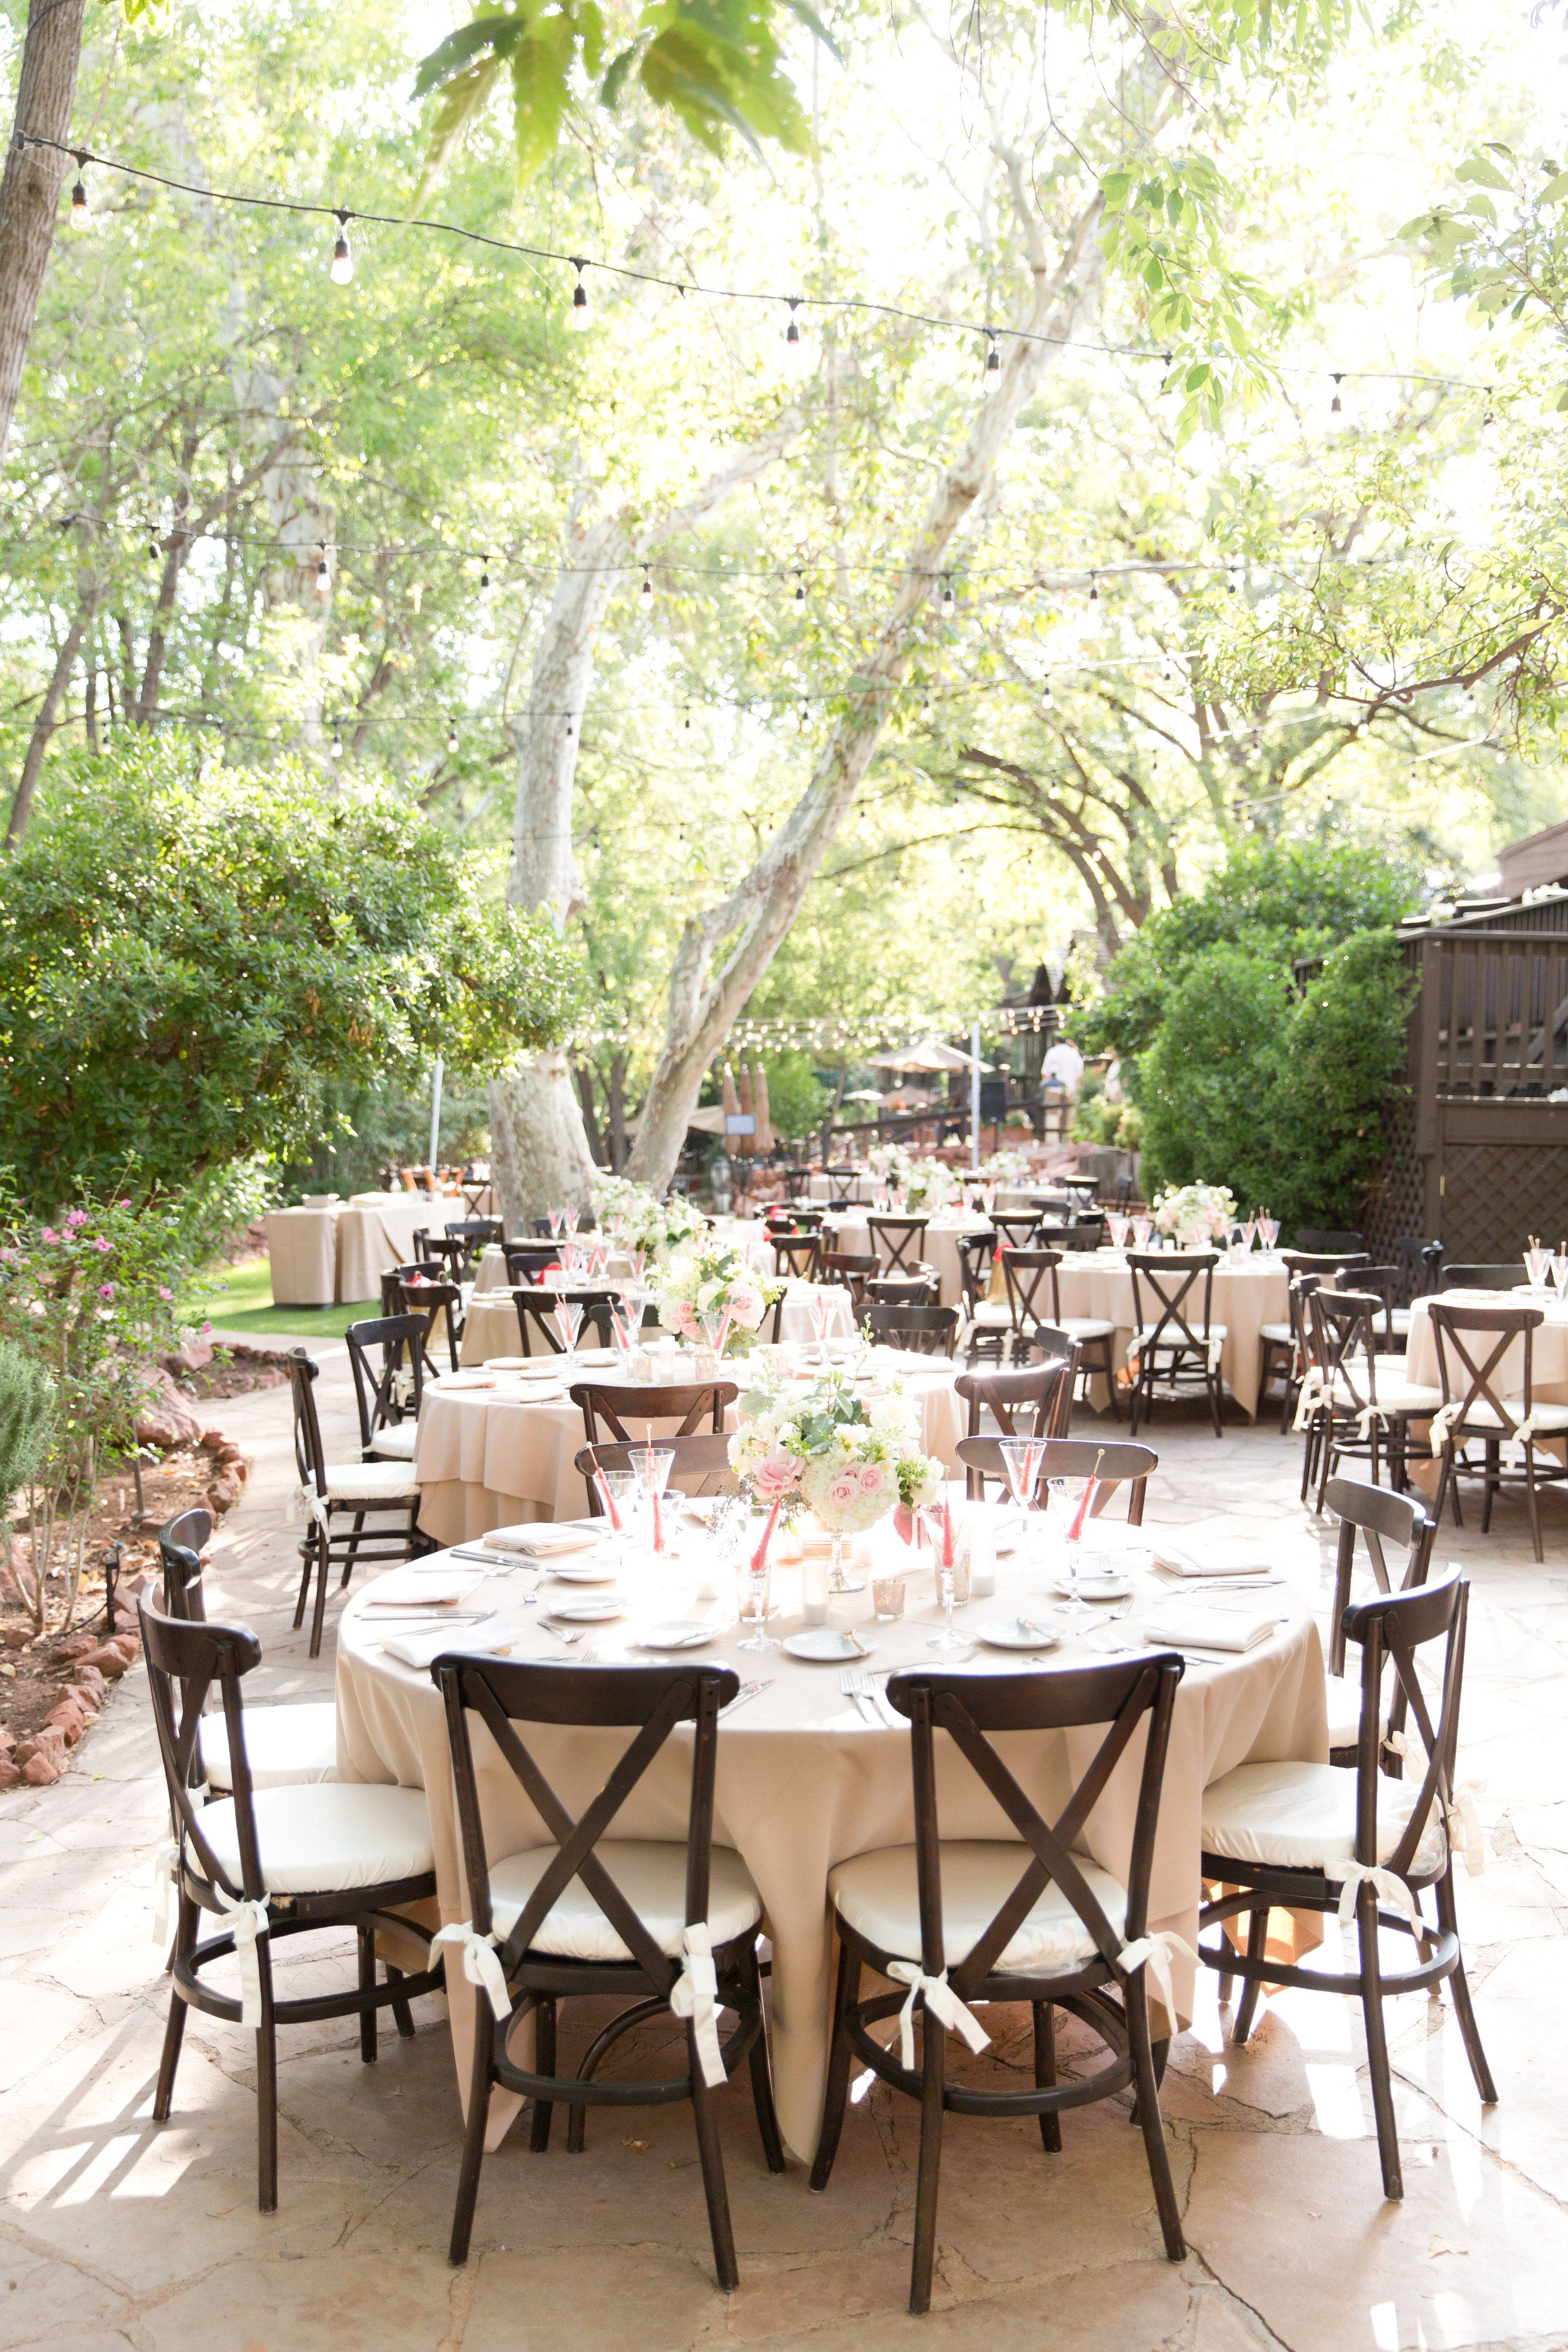 Outdoor Wedding Reception With Large Round Tables